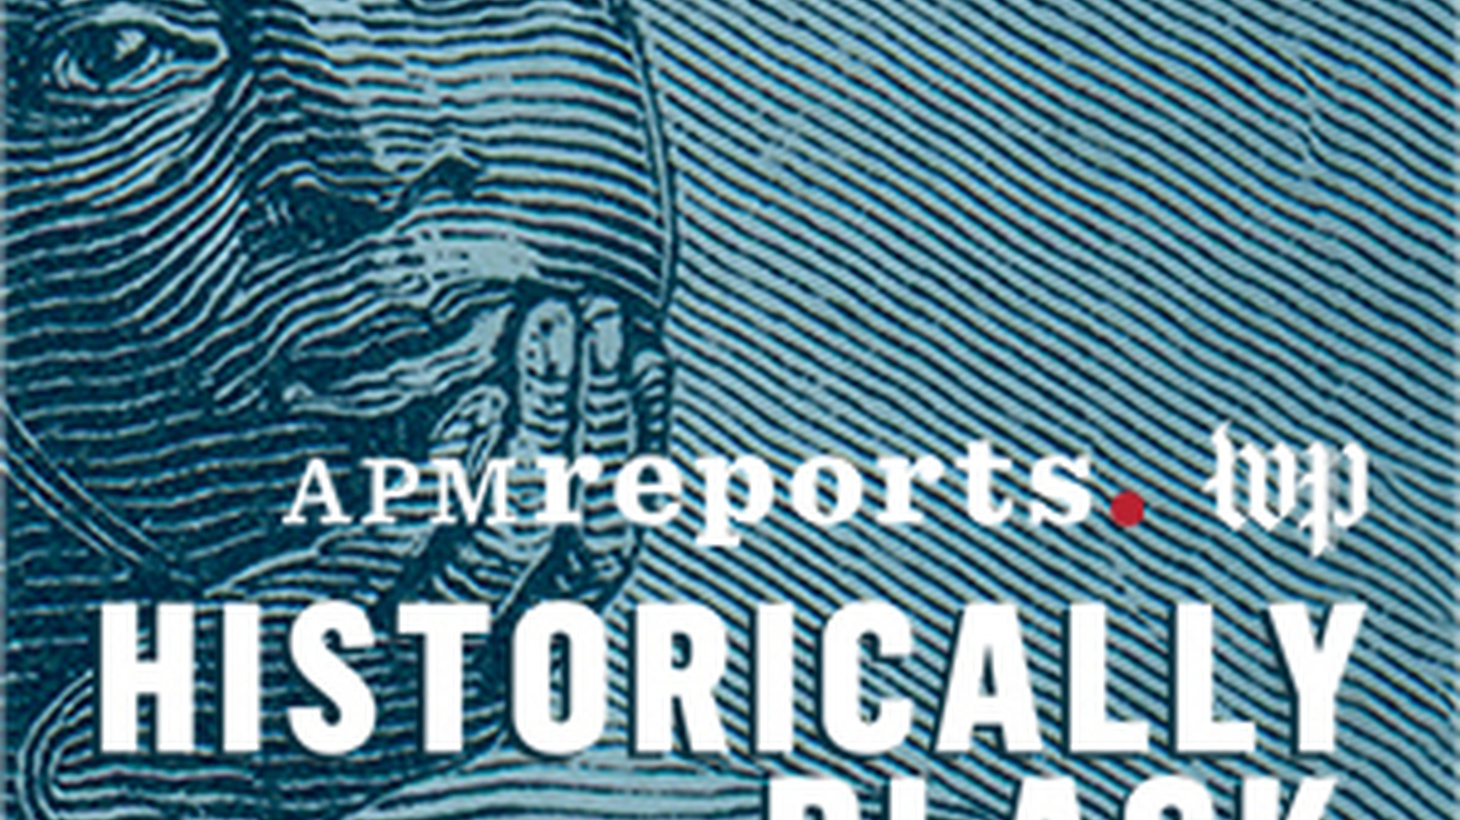 Objects hold history. They evoke stories stamped in time. APM Reports teamed up with the Washington Post to create a podcast series that spotlights some of those objects and the stories behind them. Historically Black reveals intimate and surprising aspects of history through interviews, archival sound and music.